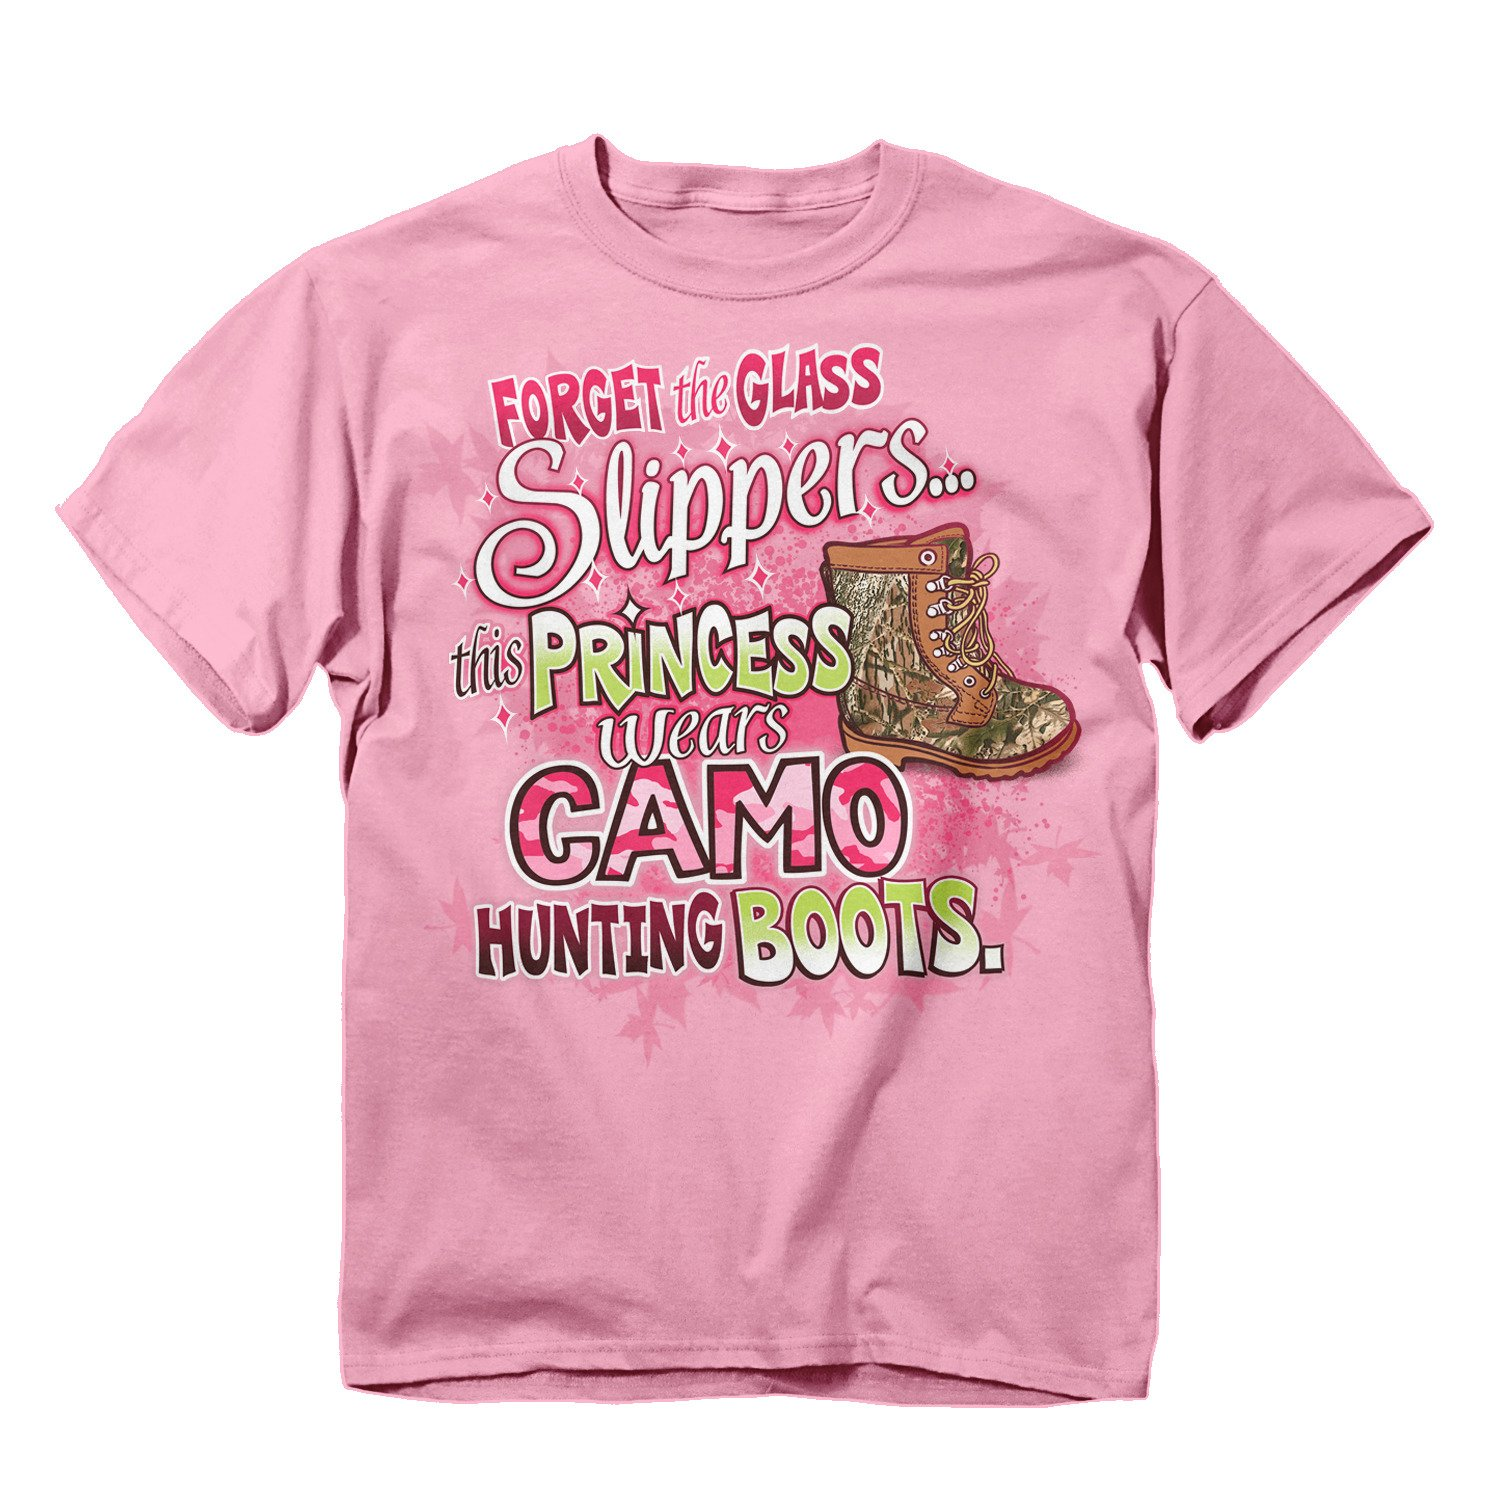 Buck Wear Girl's Camo Hunting Boots T-Shirt (5 oz. Range), Pink, X-Small